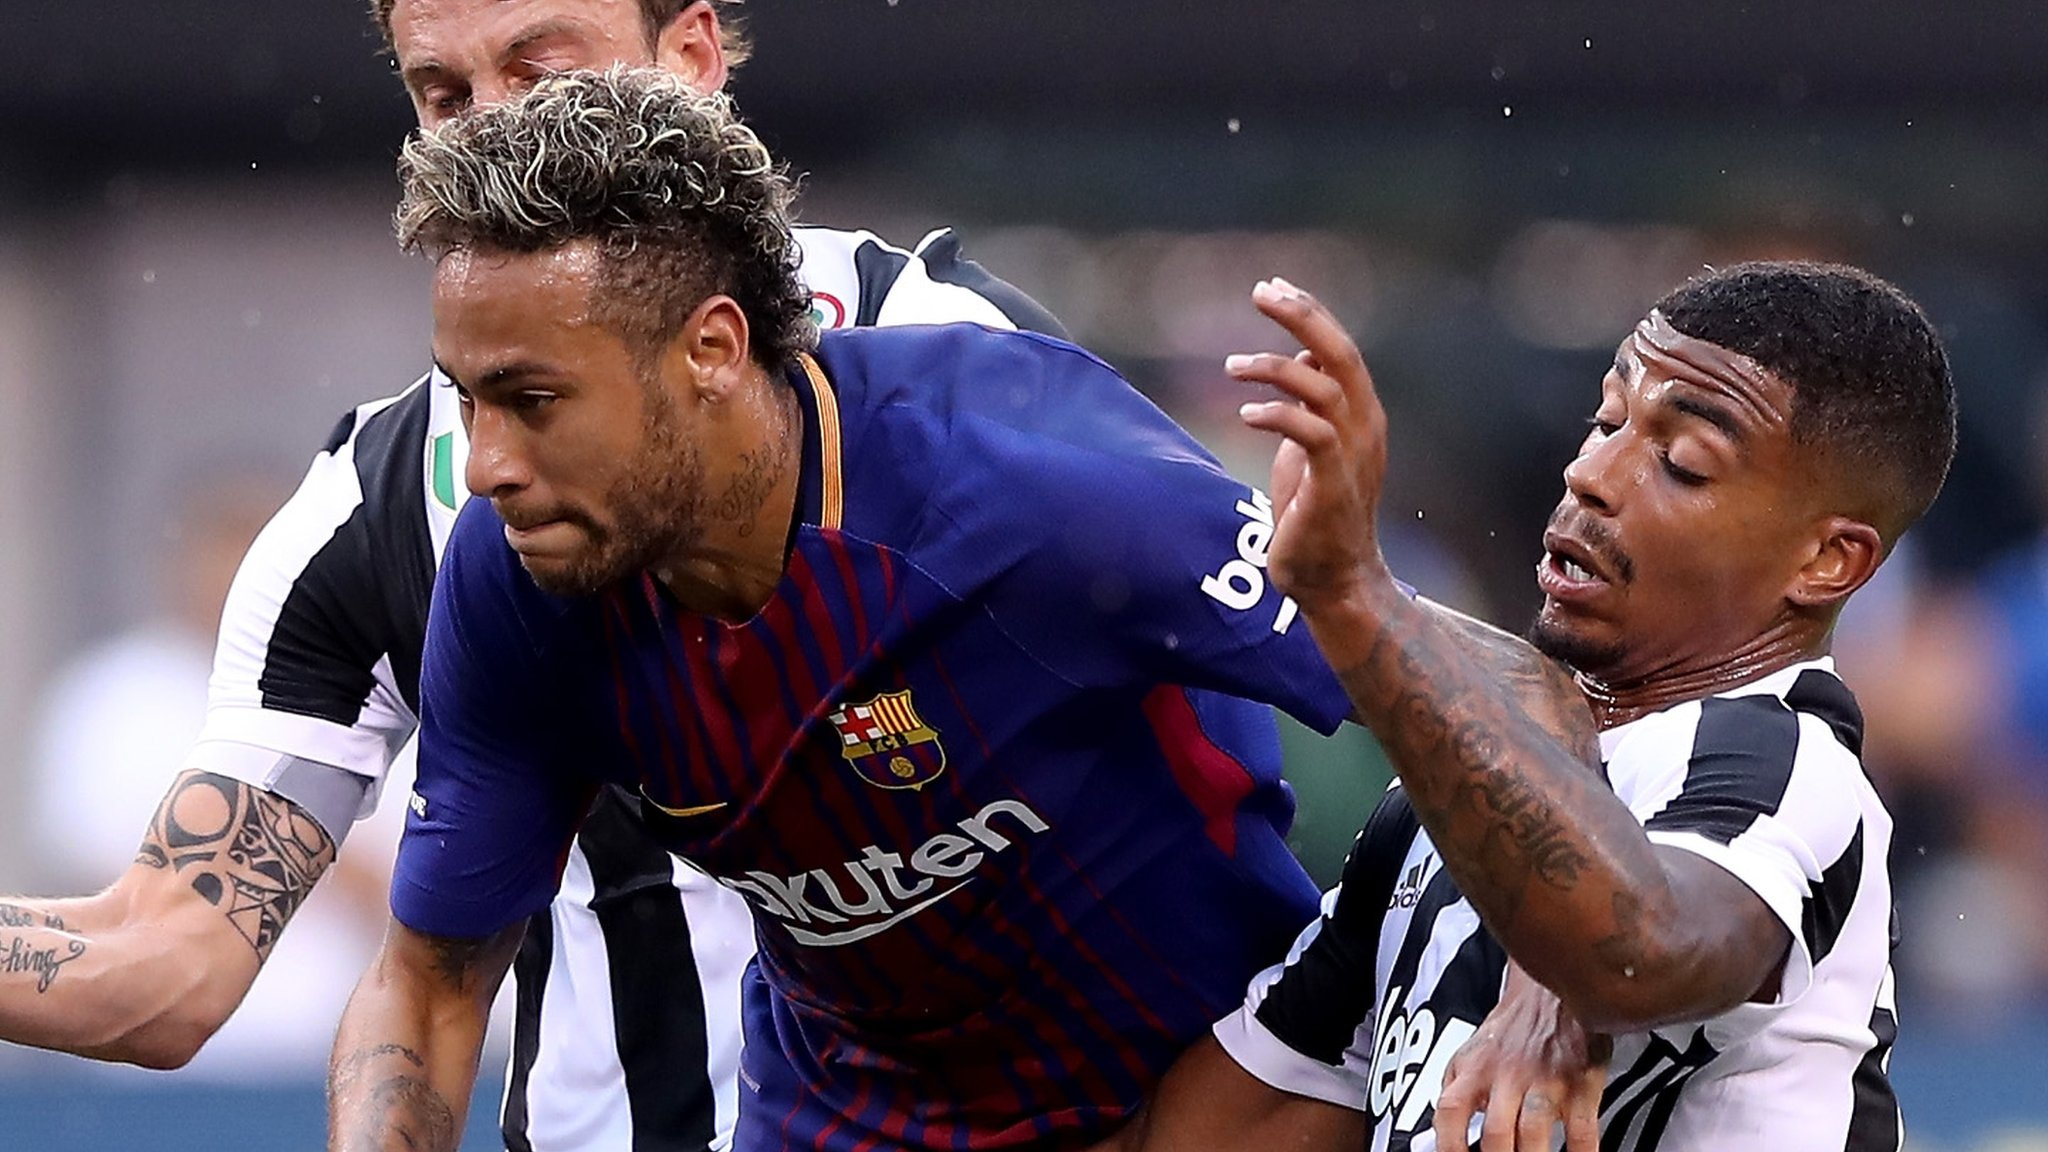 We want Neymar to stay - Barca coach Valverde